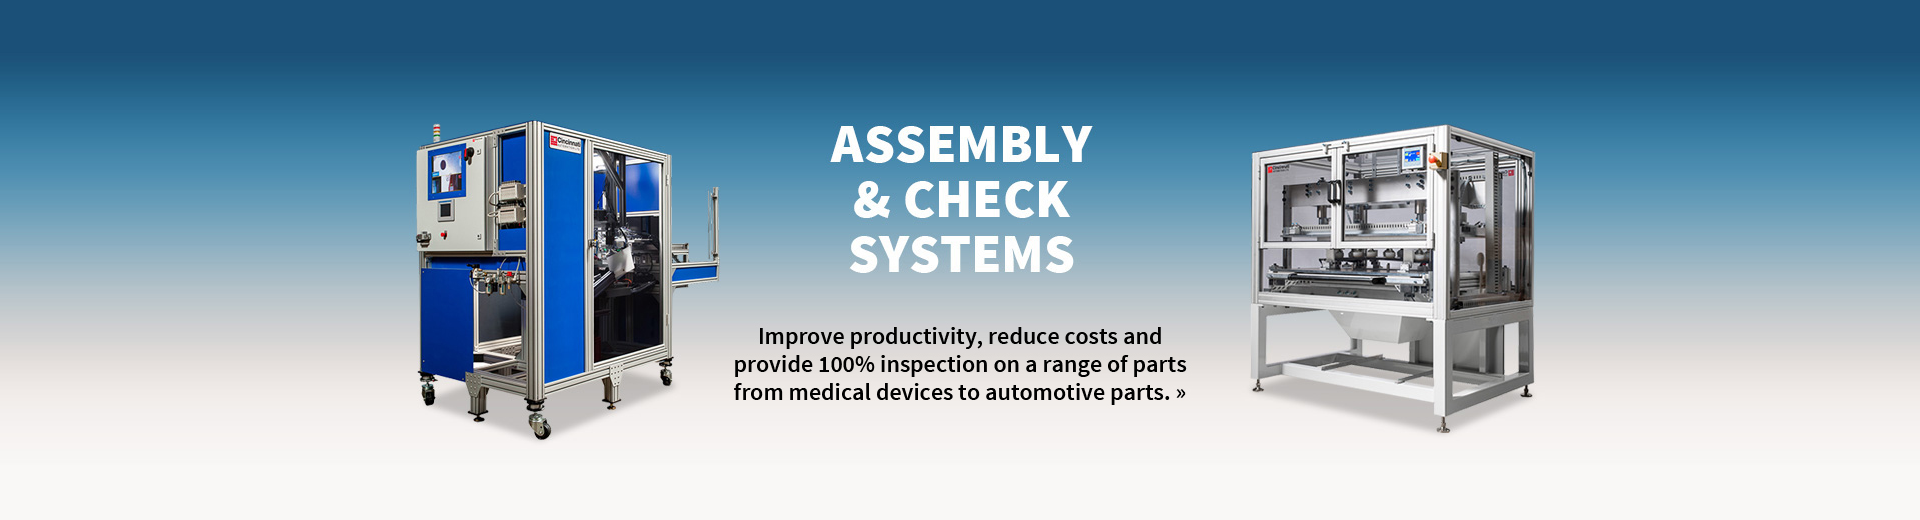 Assembly & Check Systems